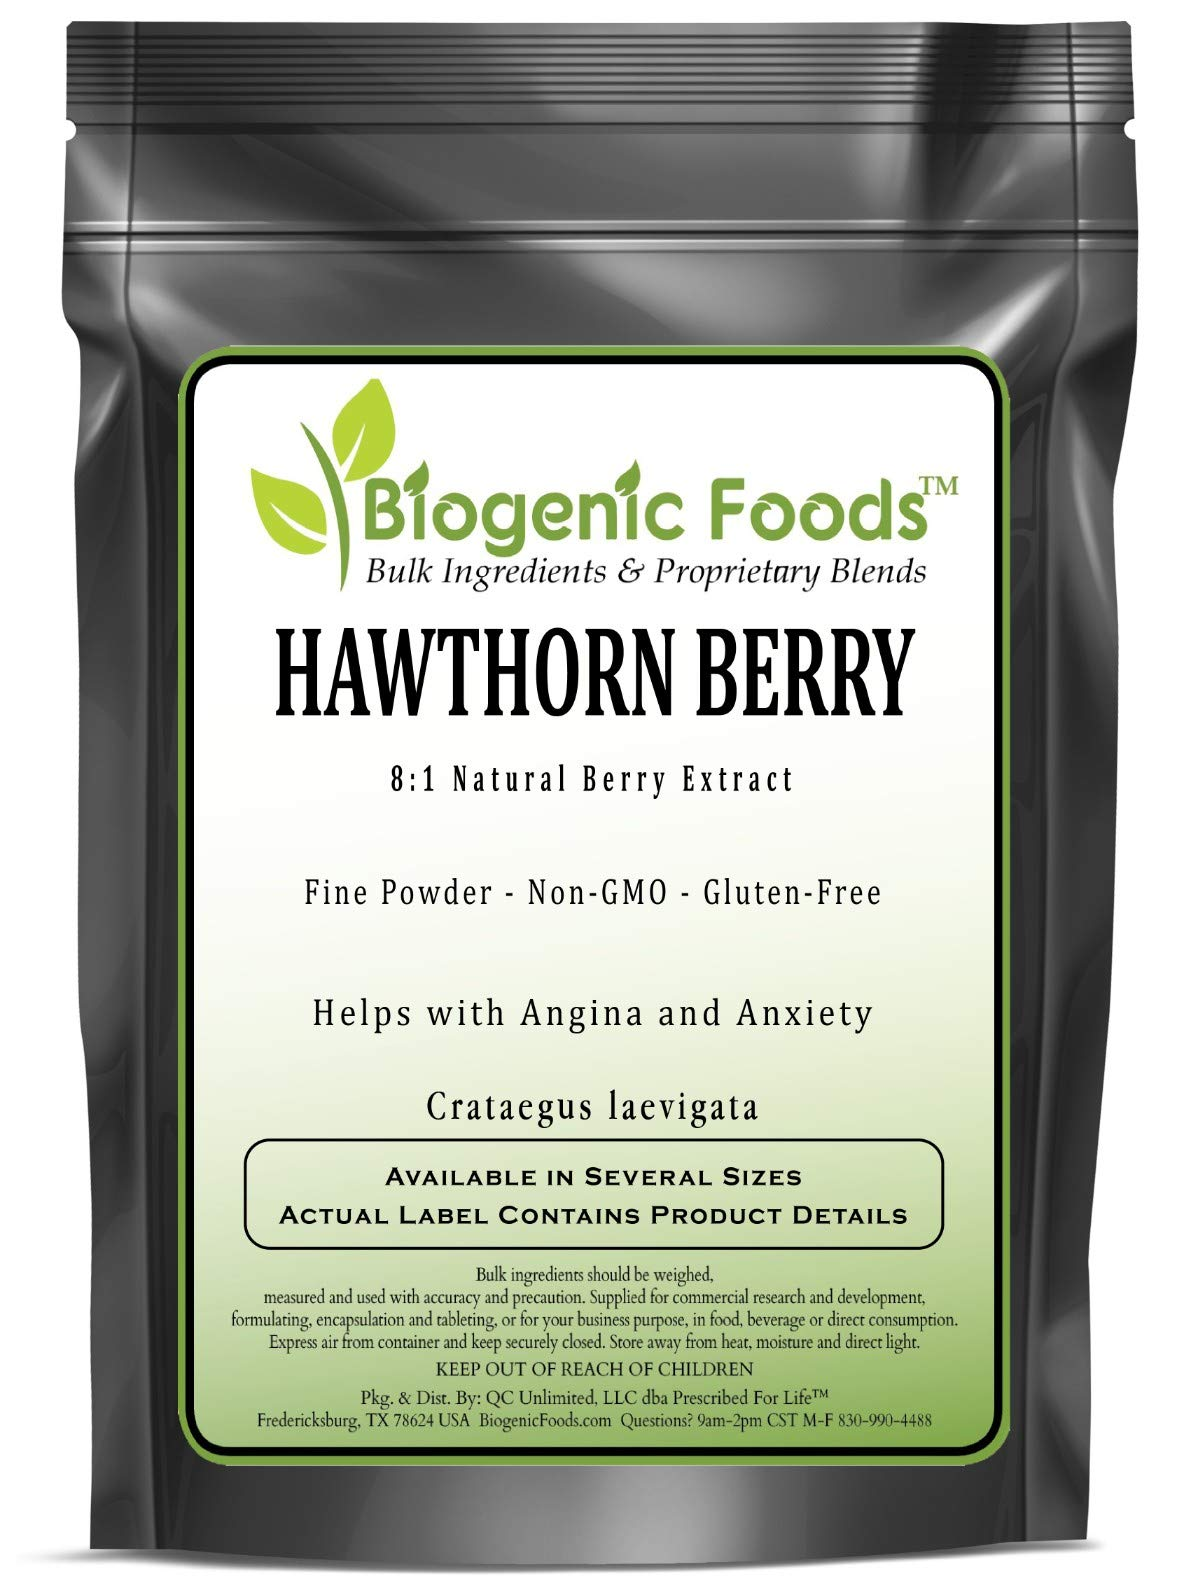 Hawthorn Berry - 8:1 Natural Berry Fine Powder Extract (Crataegus laevigata), 2 kg